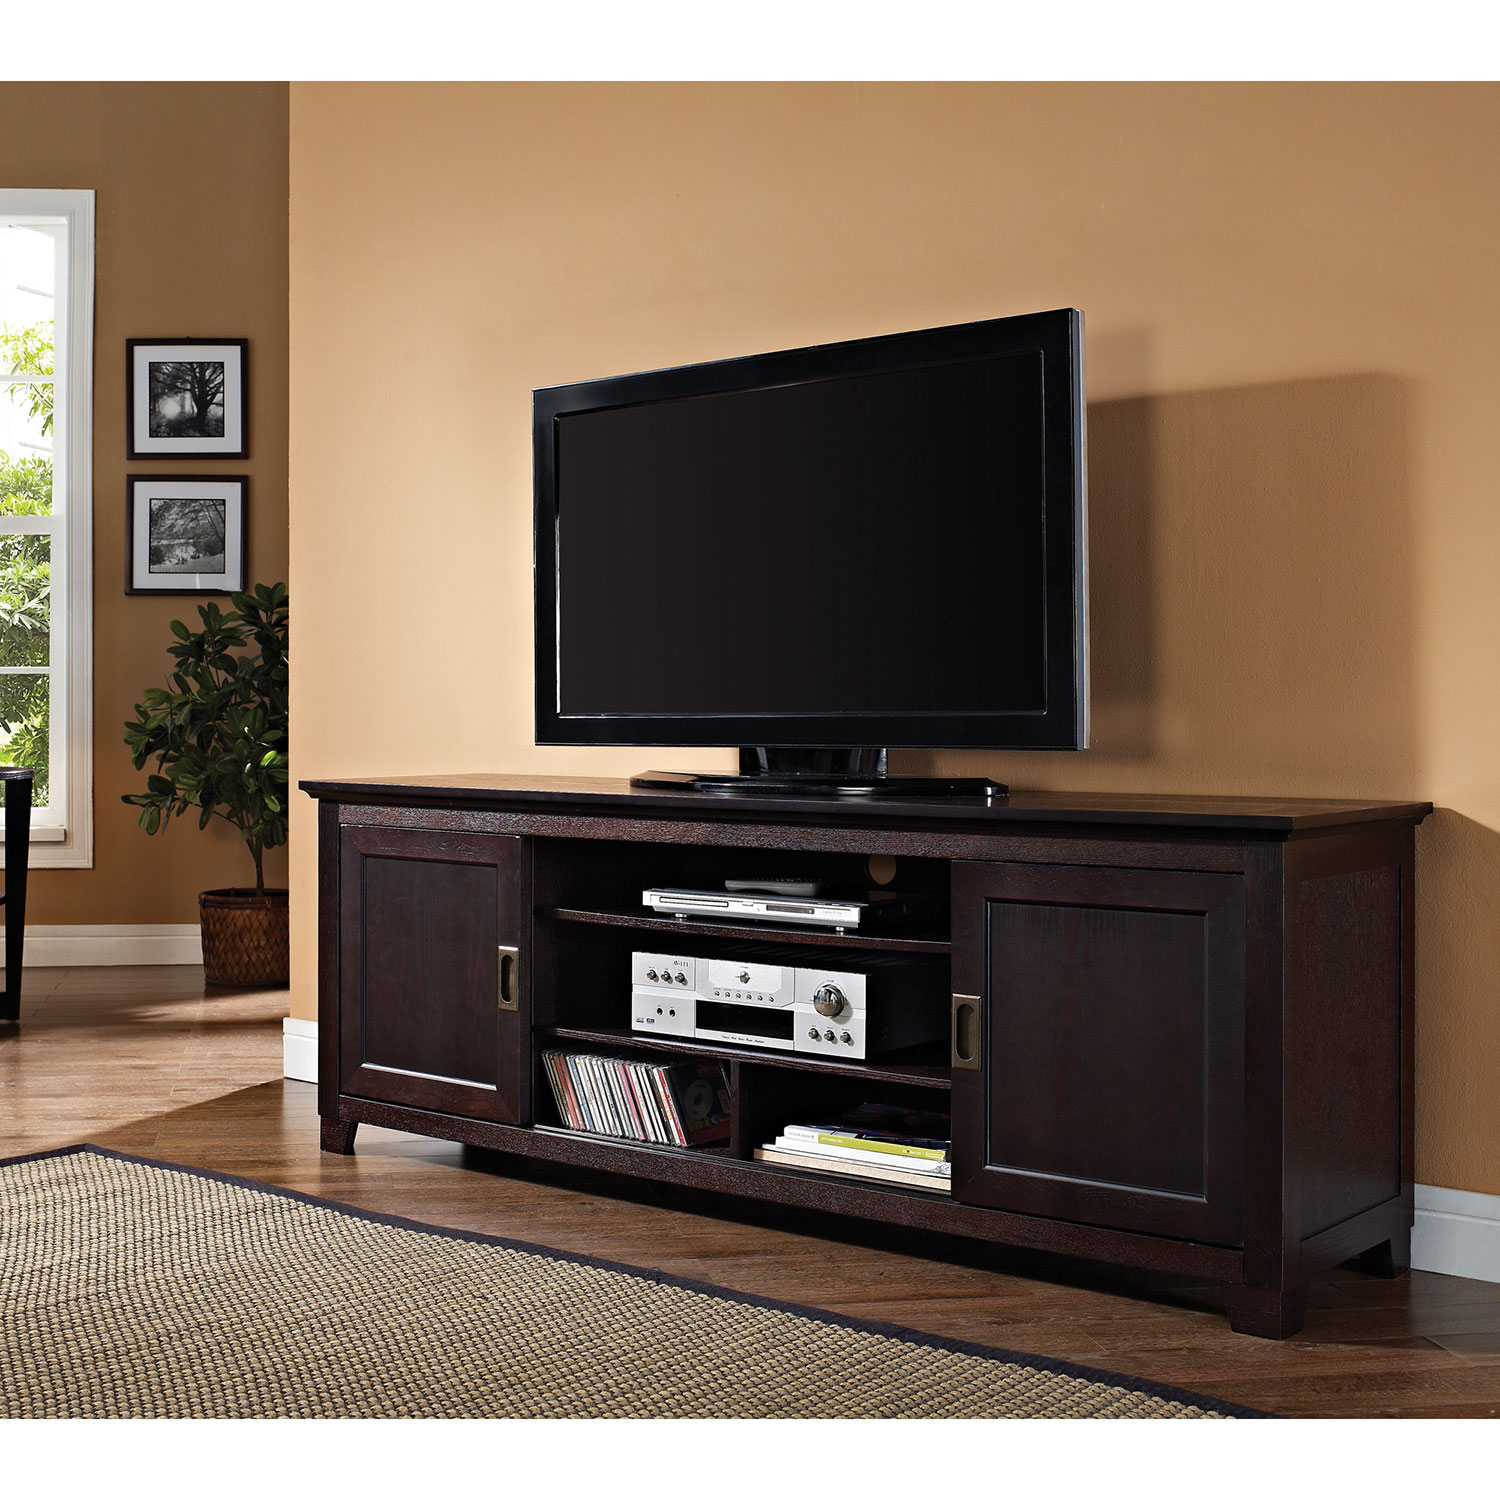 walker edison  tv stand  espresso  tv stands  best buy canada -